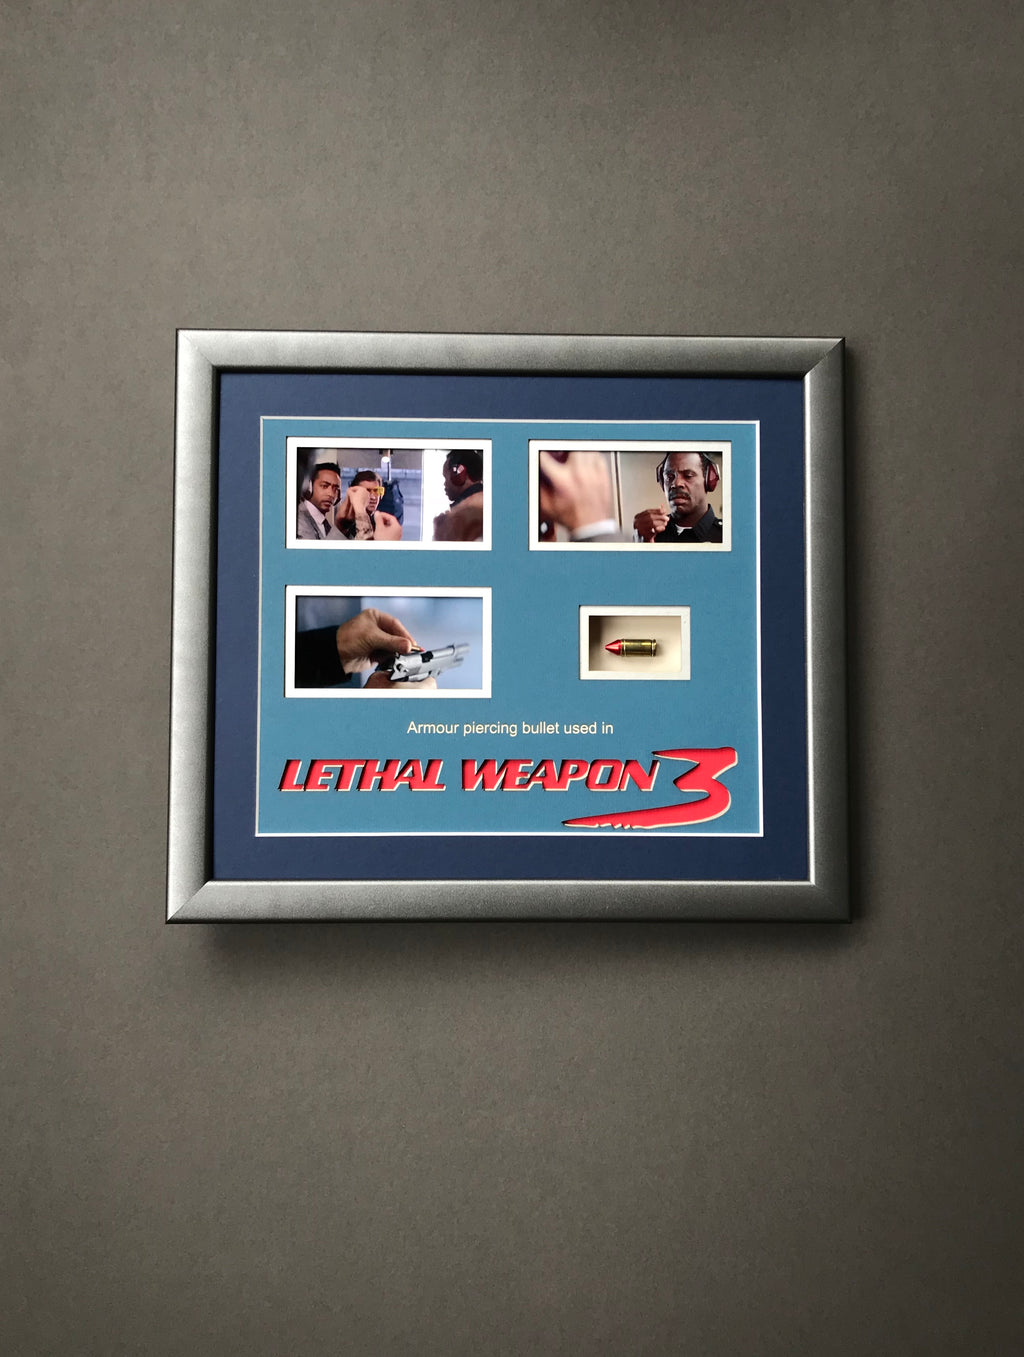 Lethal Weapon 3 (1992) - A Framed Armour Piercing Bullet